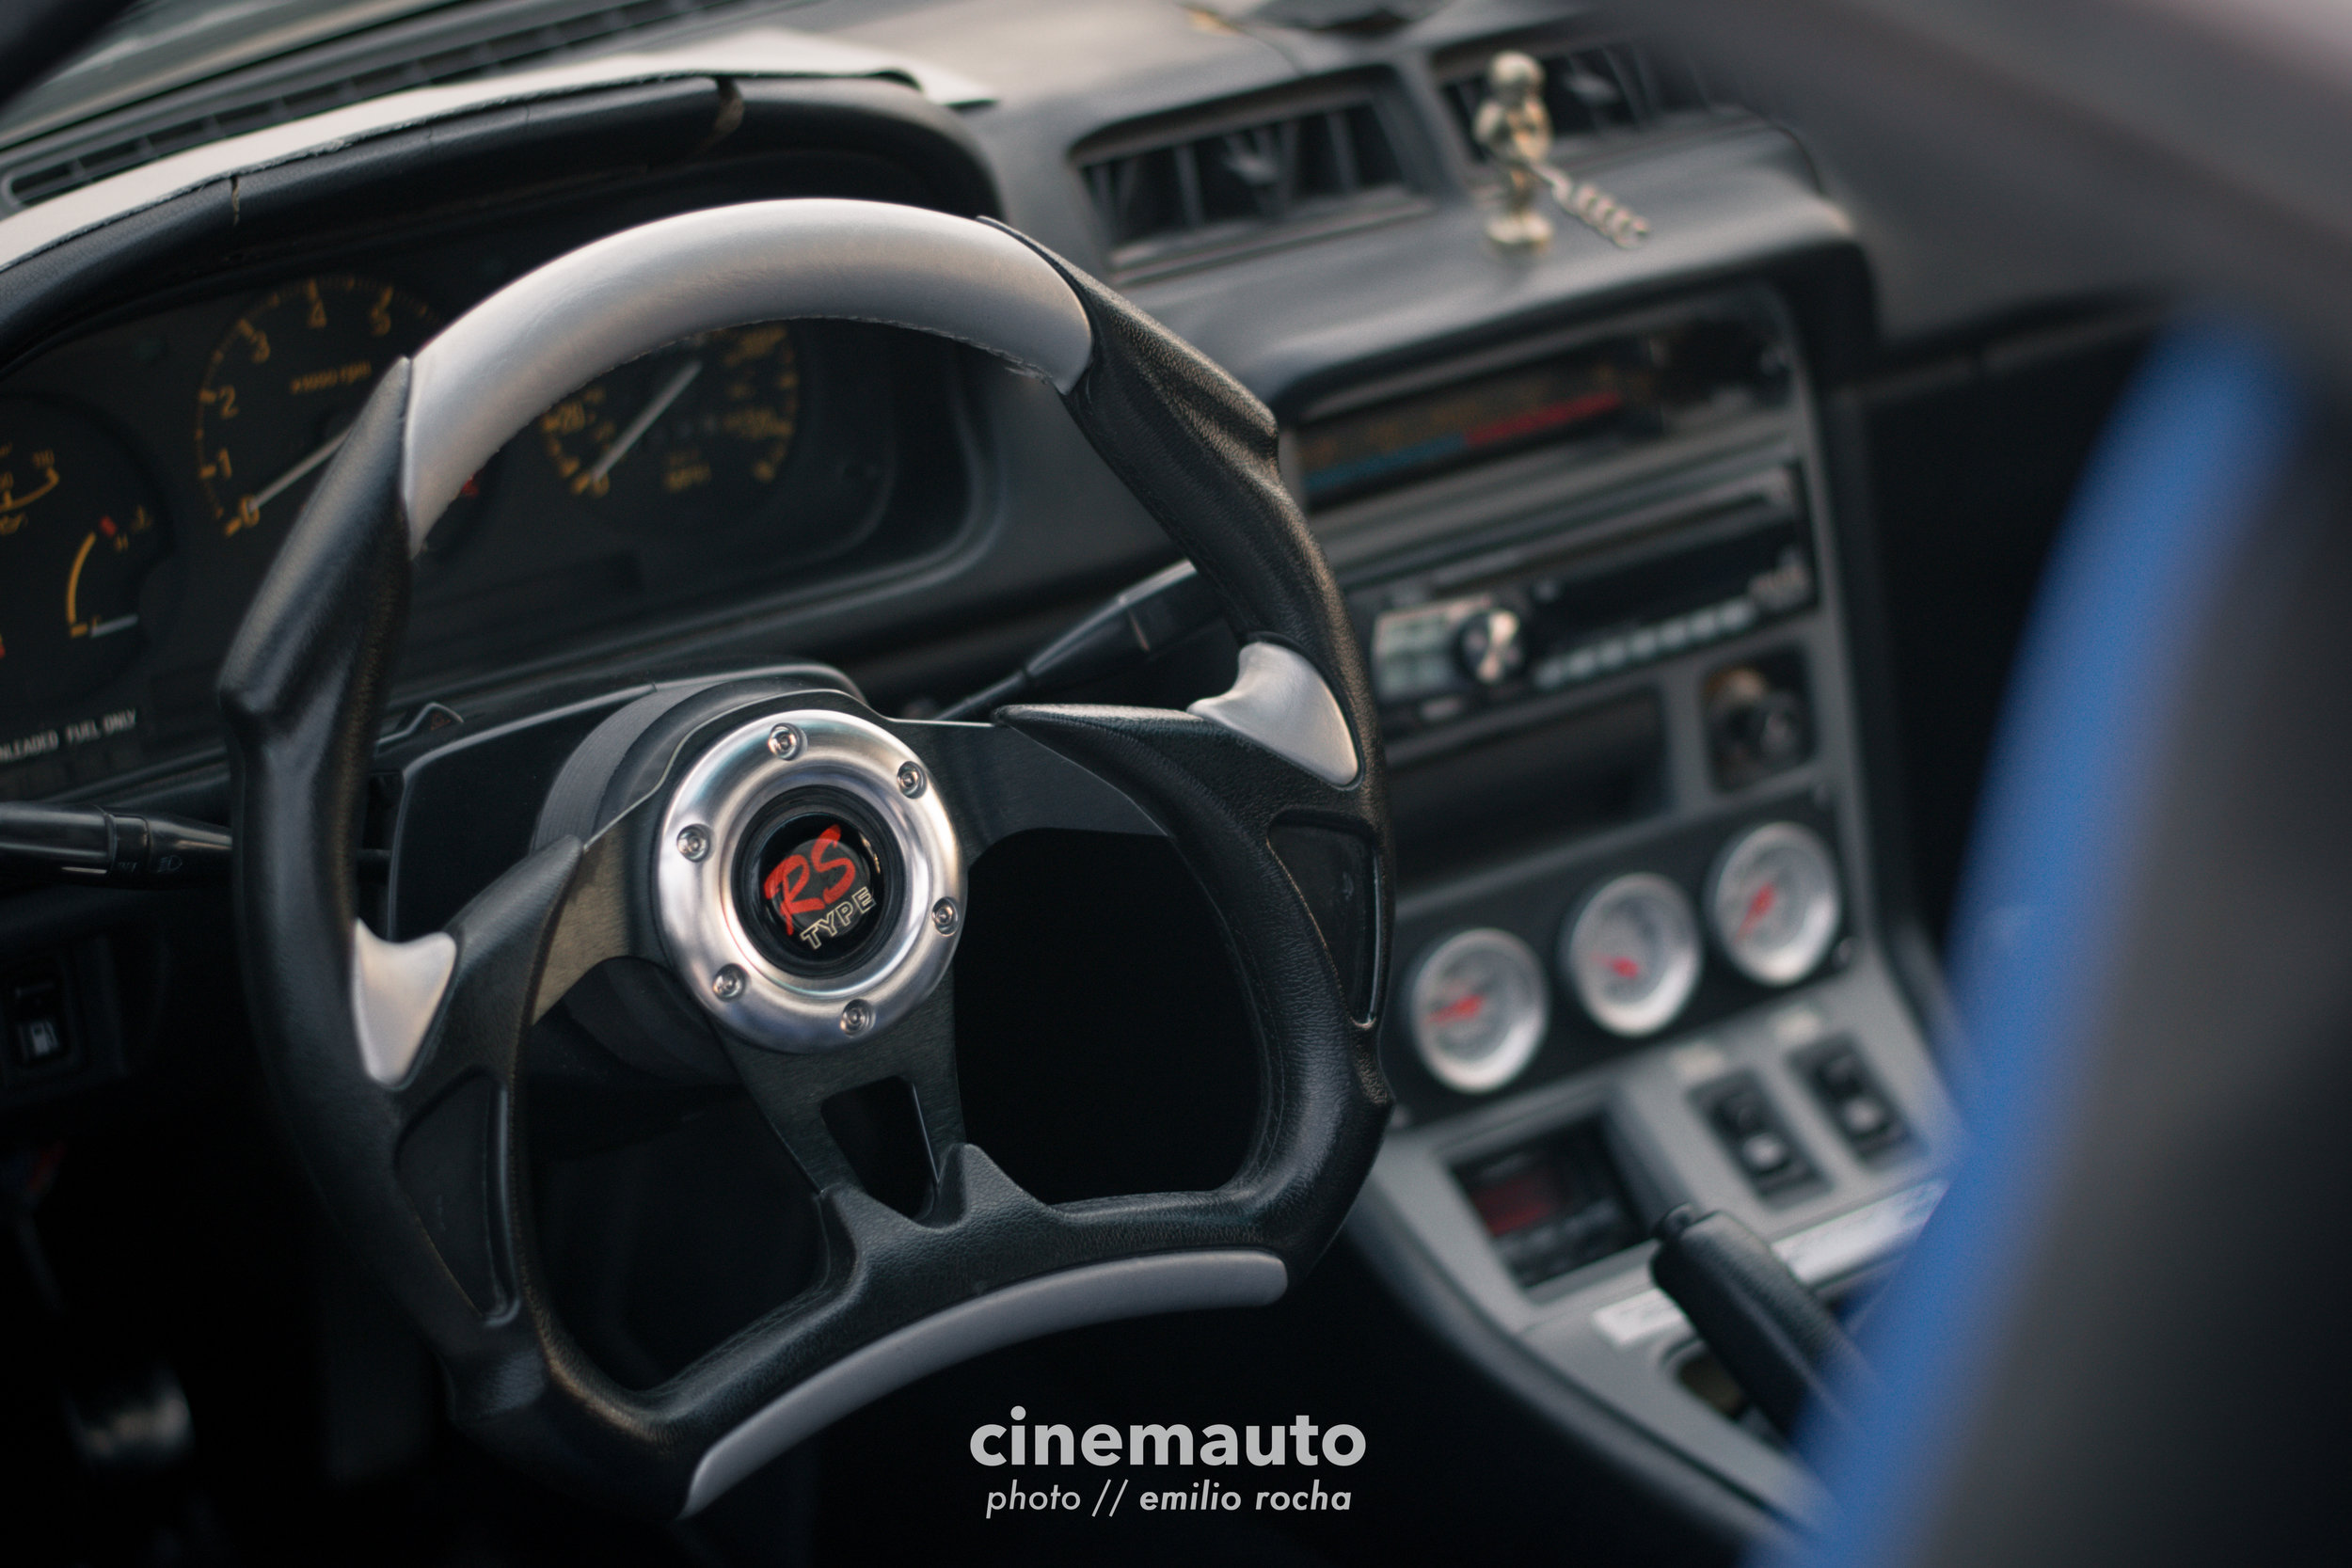 Cinemauto-RX7-12.jpg